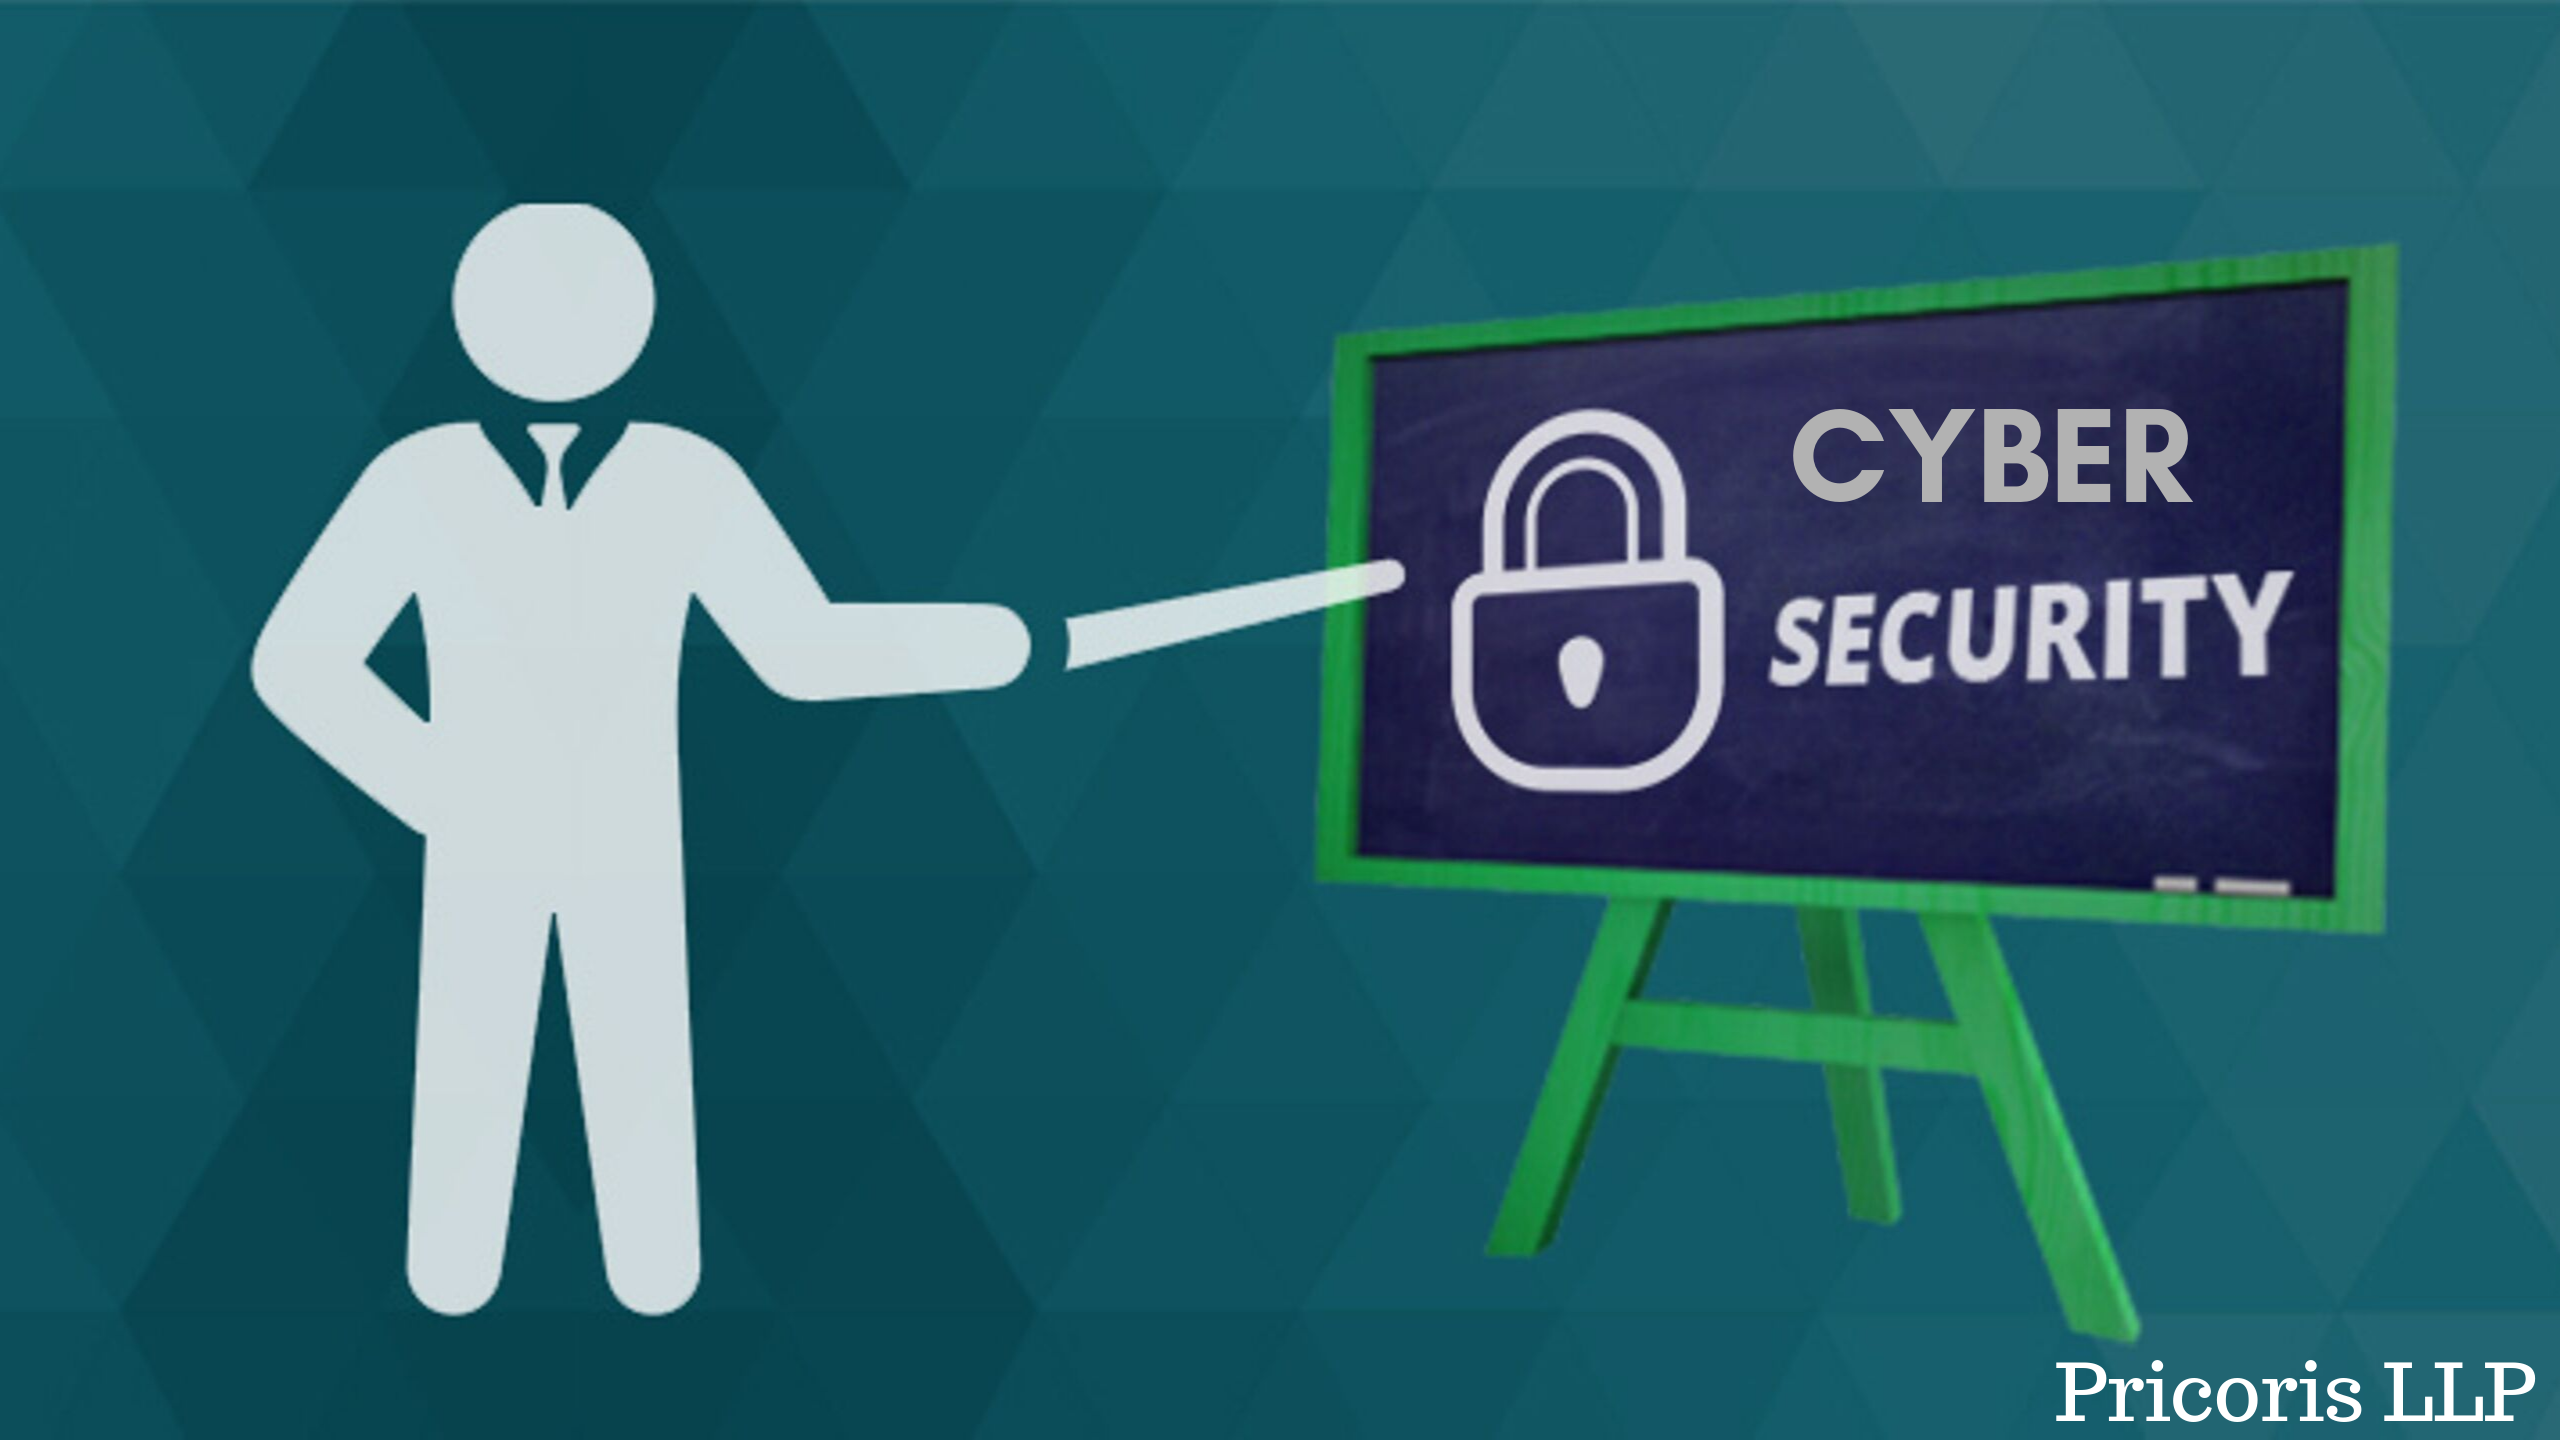 Cyber Security Cyber Security Training Cyber Security Course In India Cyber Security Cybersecurity Training Security Training